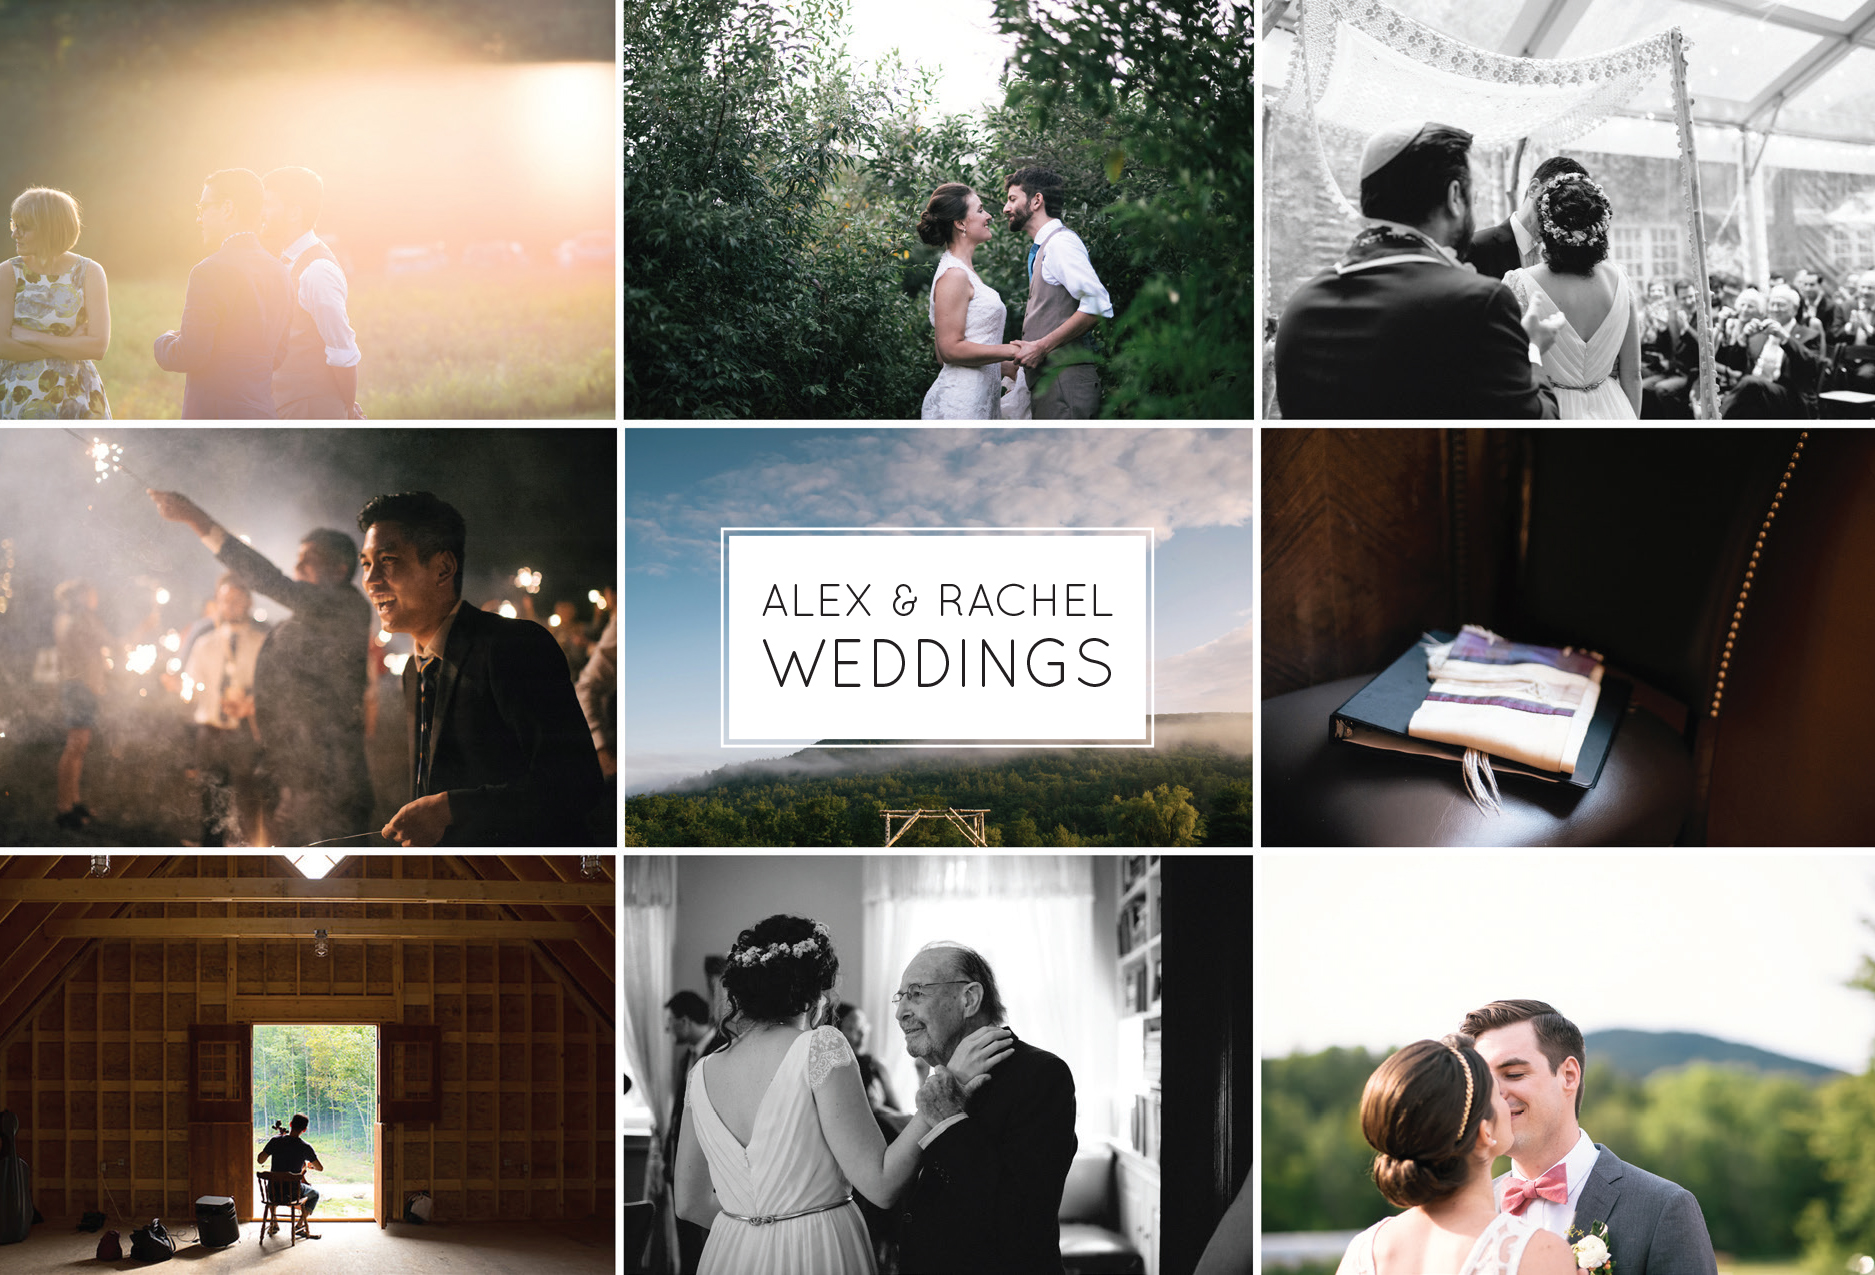 Alex & Rachel Weddings, Photograhers for Montague Retreat Center